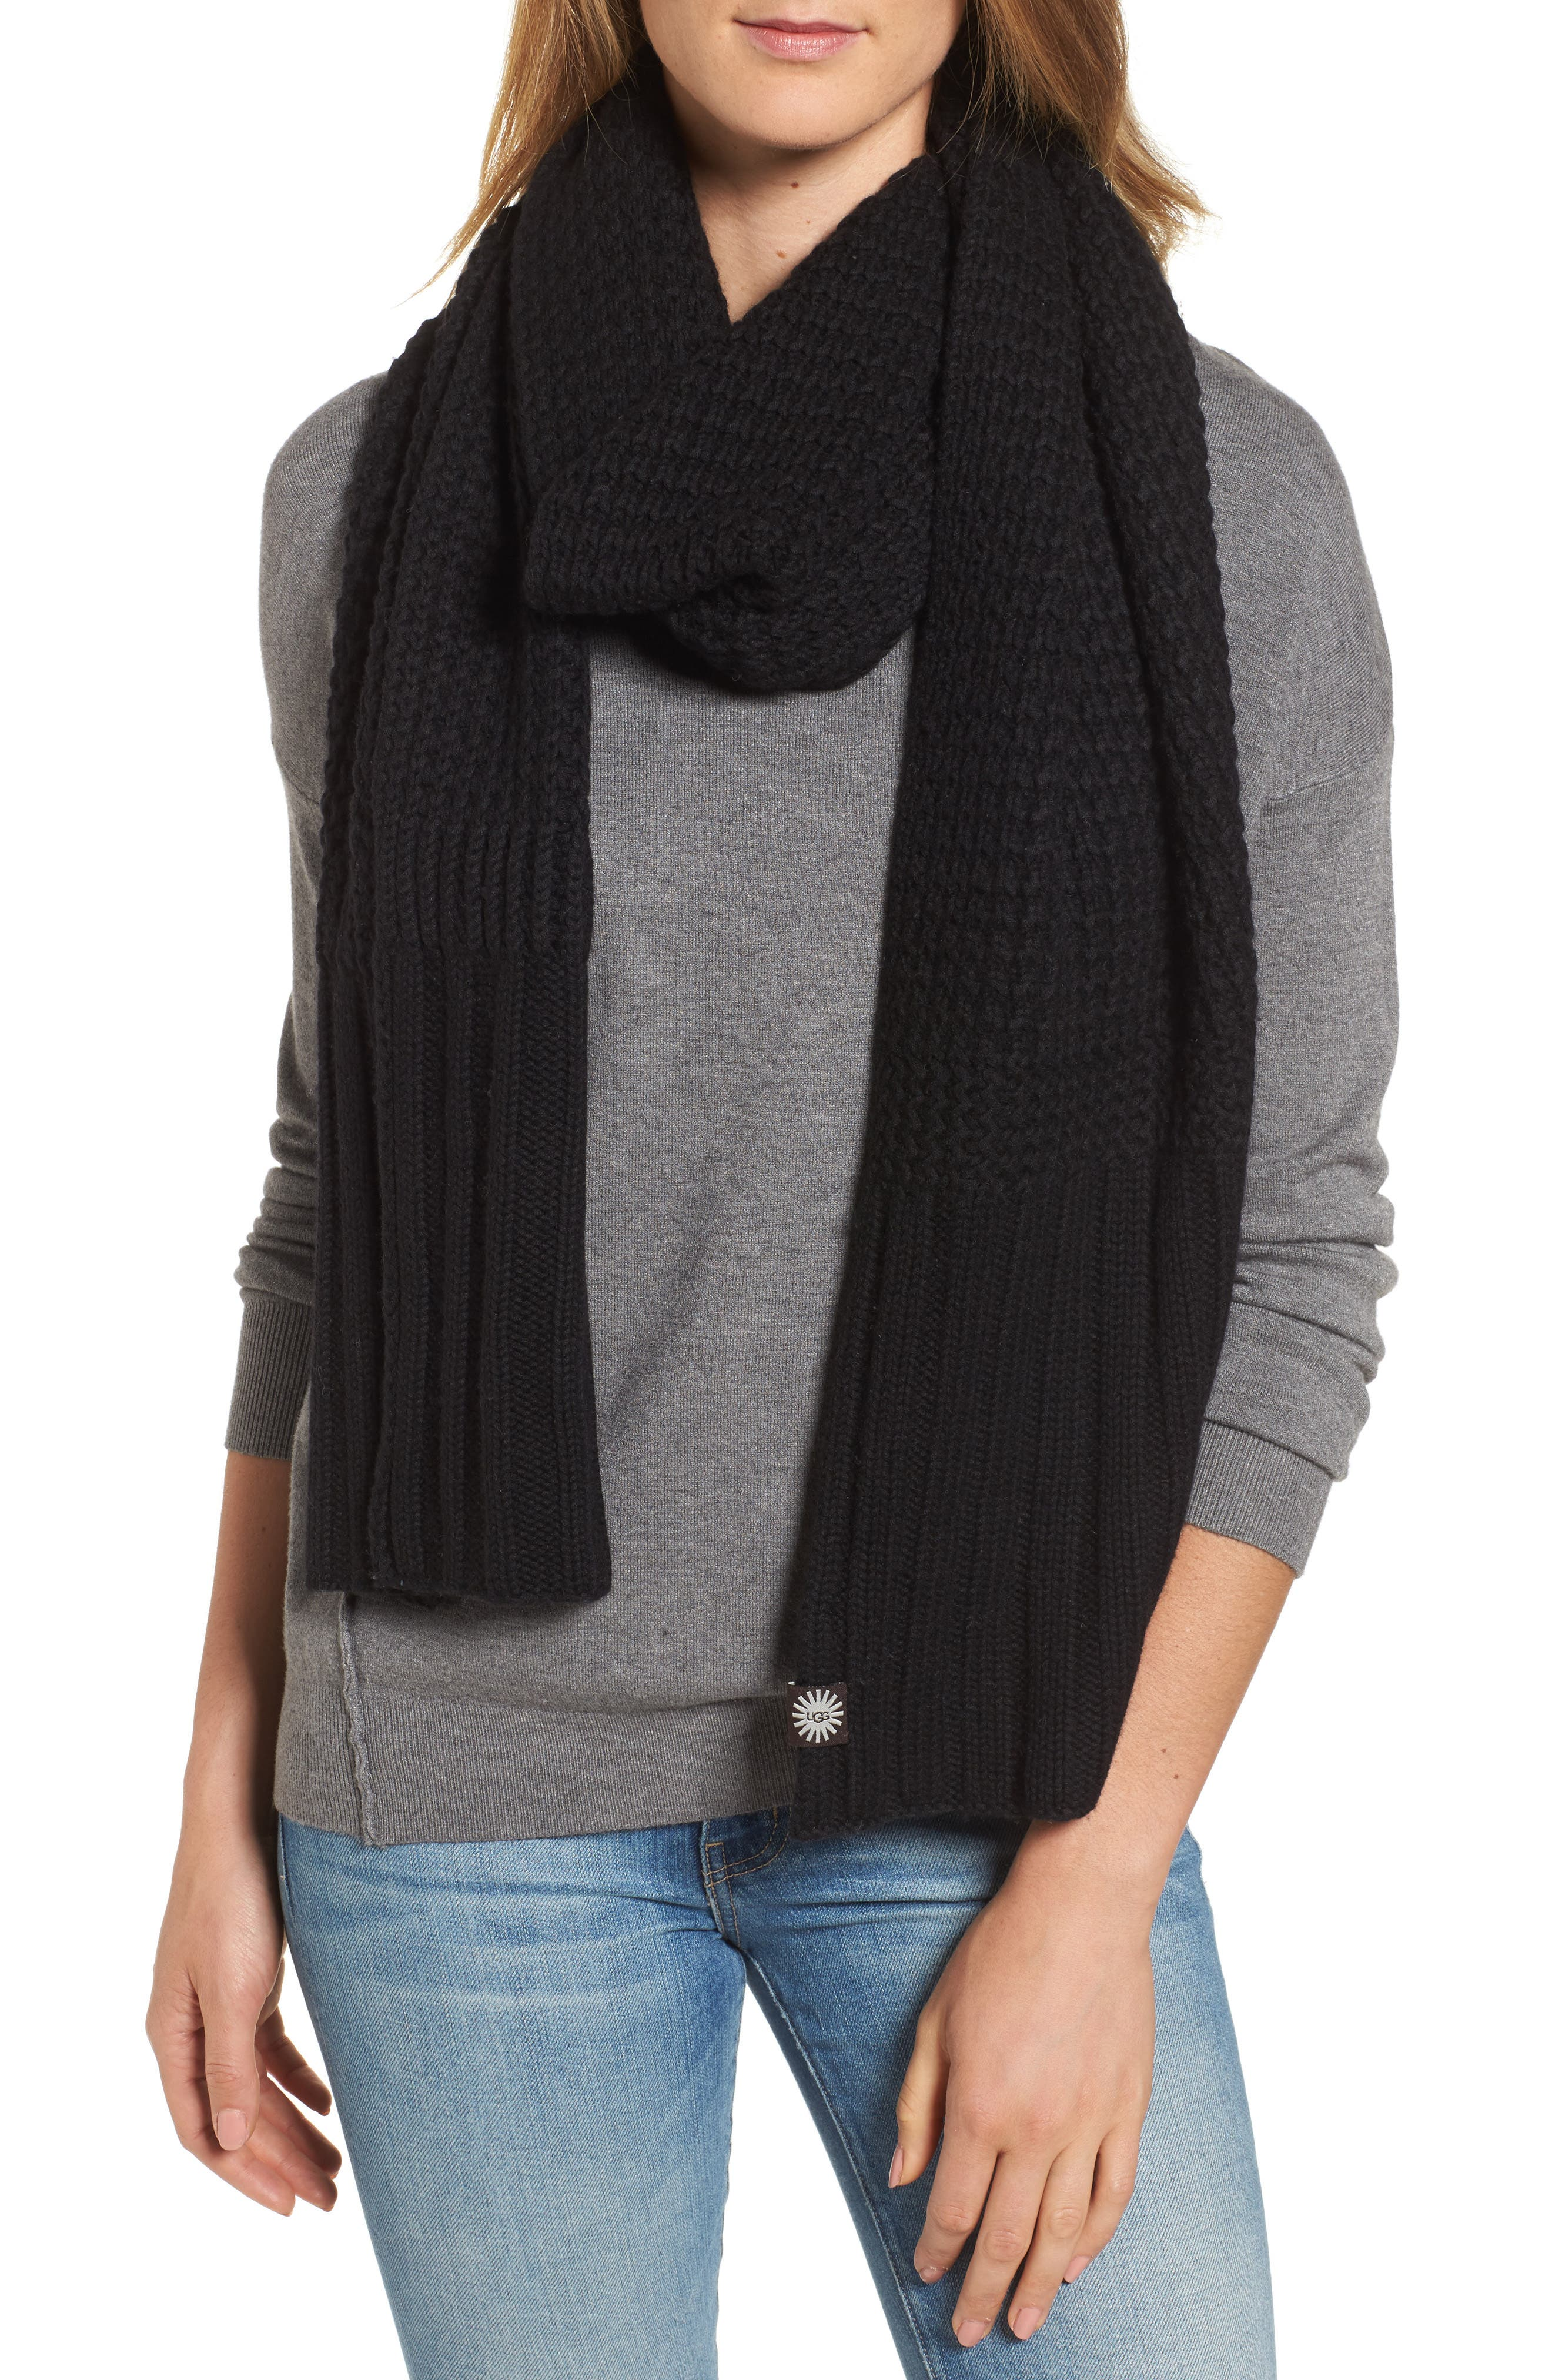 UGG<sup>®</sup> Textured Wool Blend Cardi Scarf,                             Main thumbnail 1, color,                             001